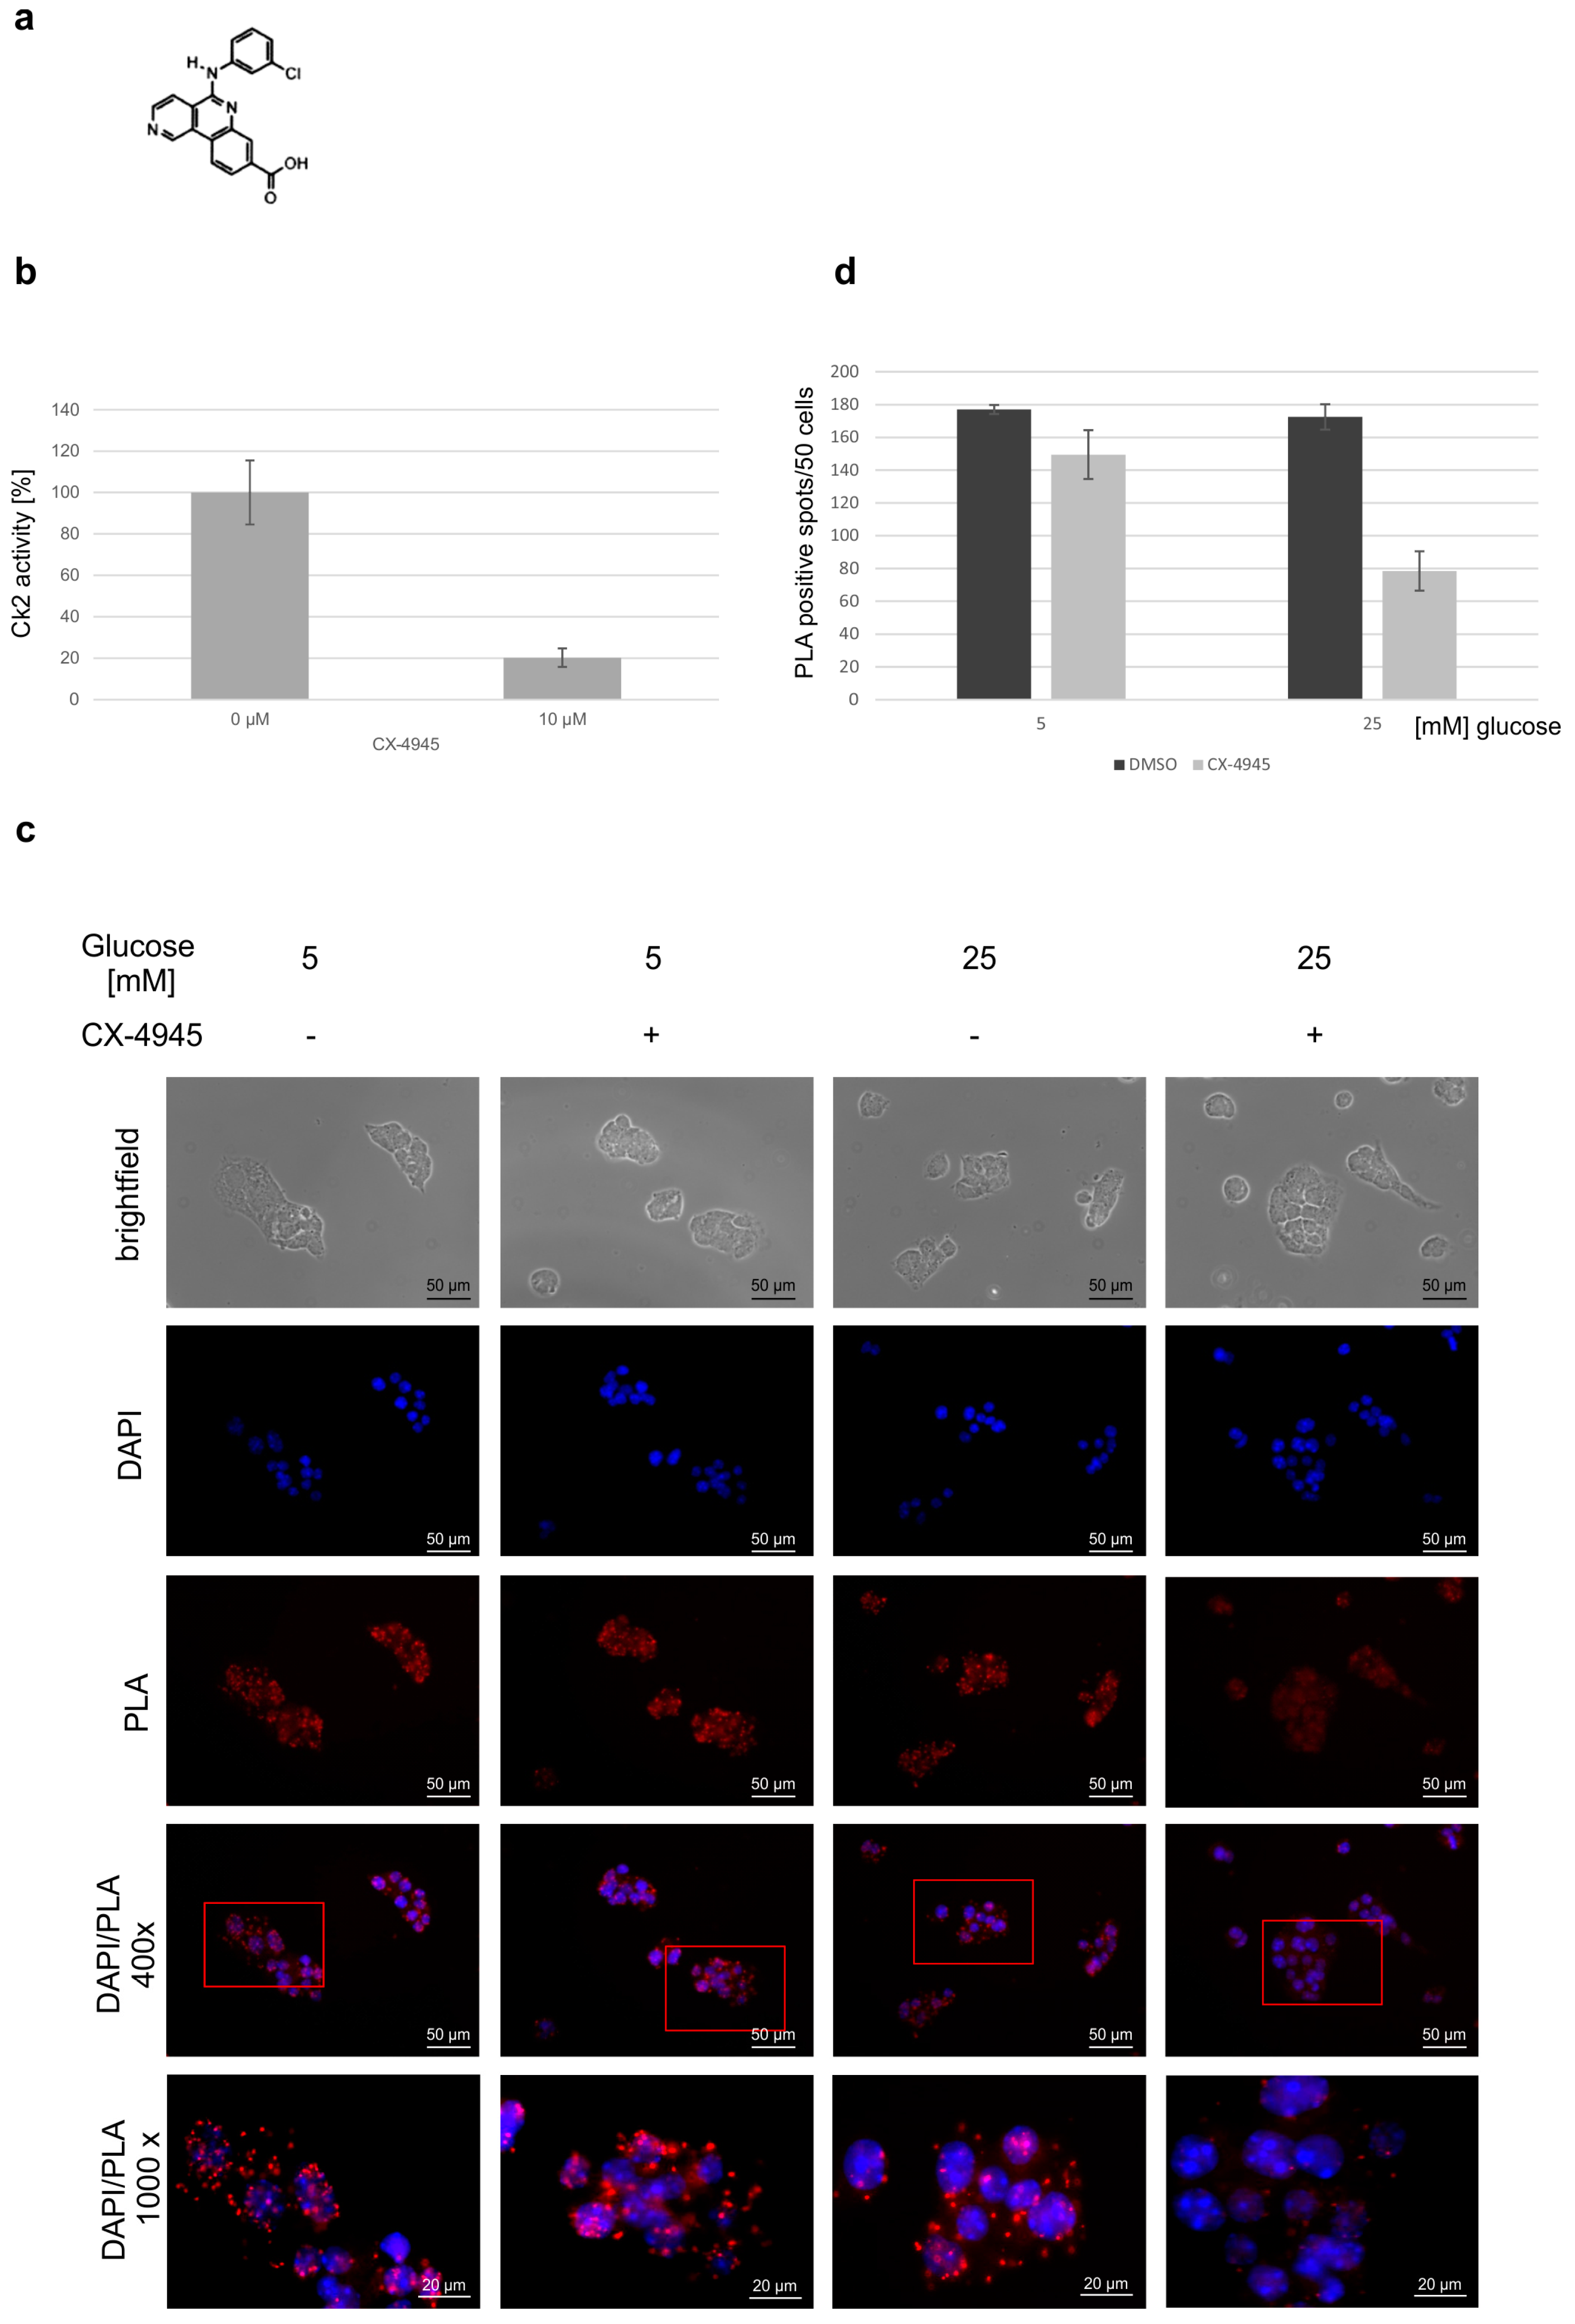 protein phosphorylation by semisynthesis from paper to practice Chapter 1 protein phosphorylation by semisynthesis: from paper to practice the microinjection our lab is expanding on the notion of phosphorylation by protein.